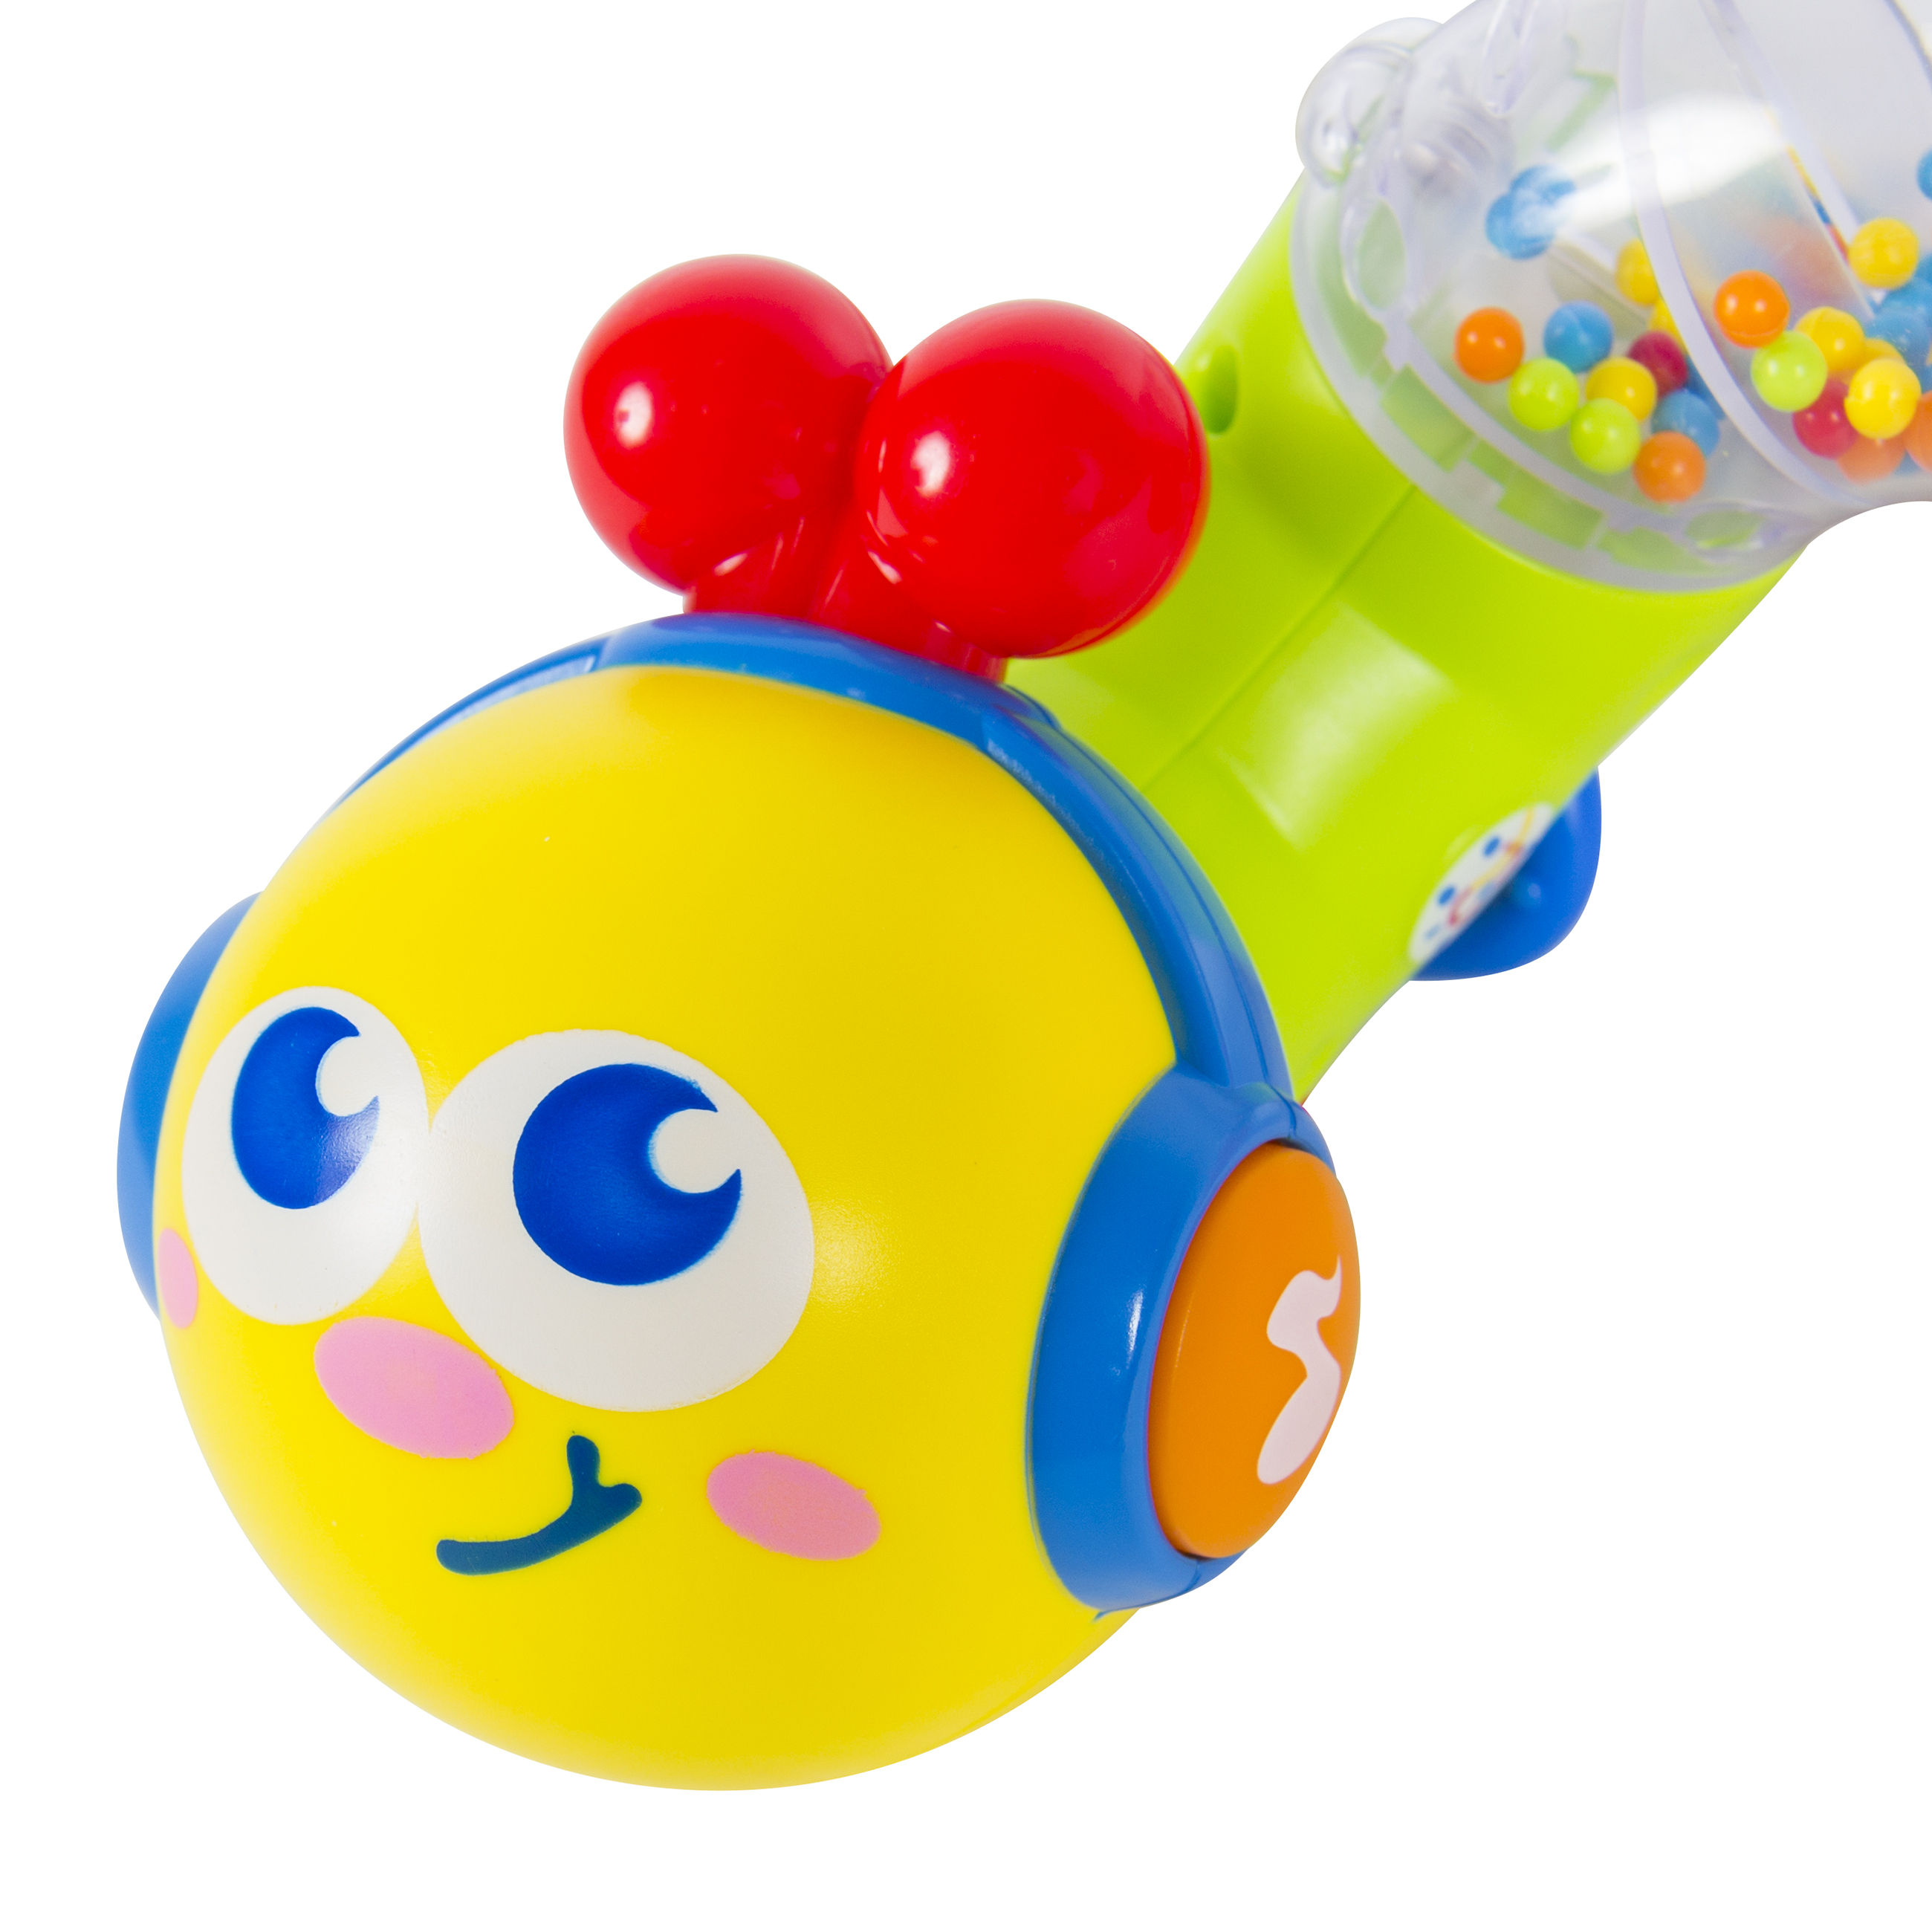 Twisting Rattling Baby Teether Toy Worm with Lights and Music